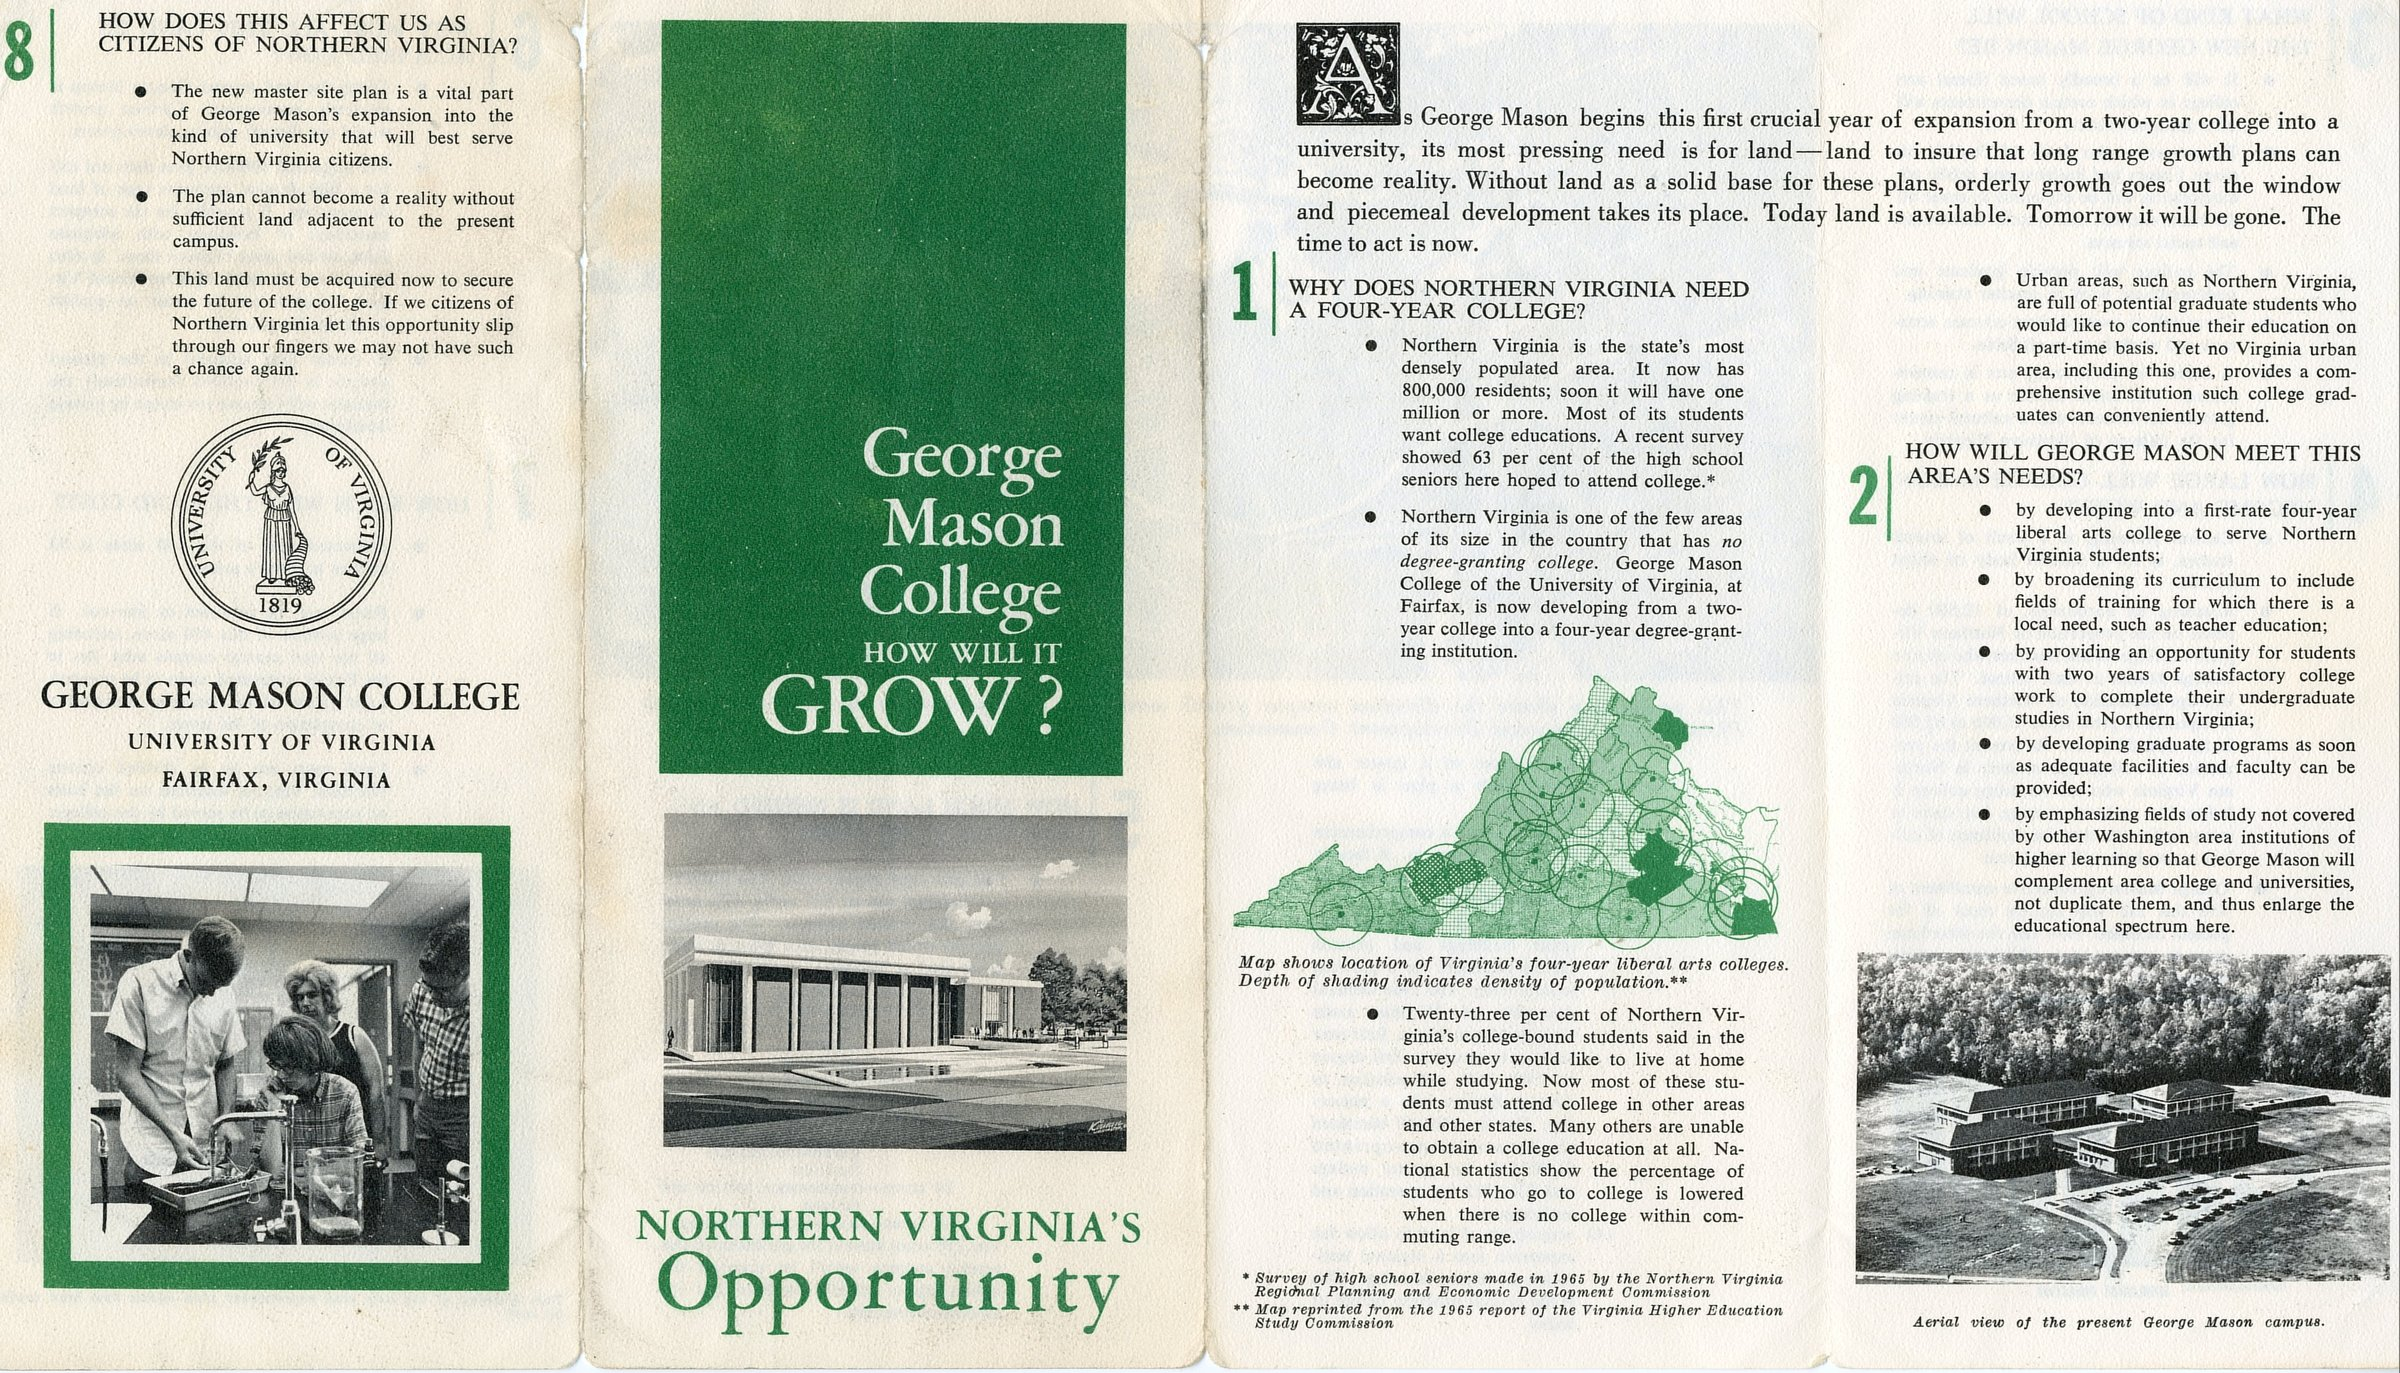 George Mason College: how will it grow?